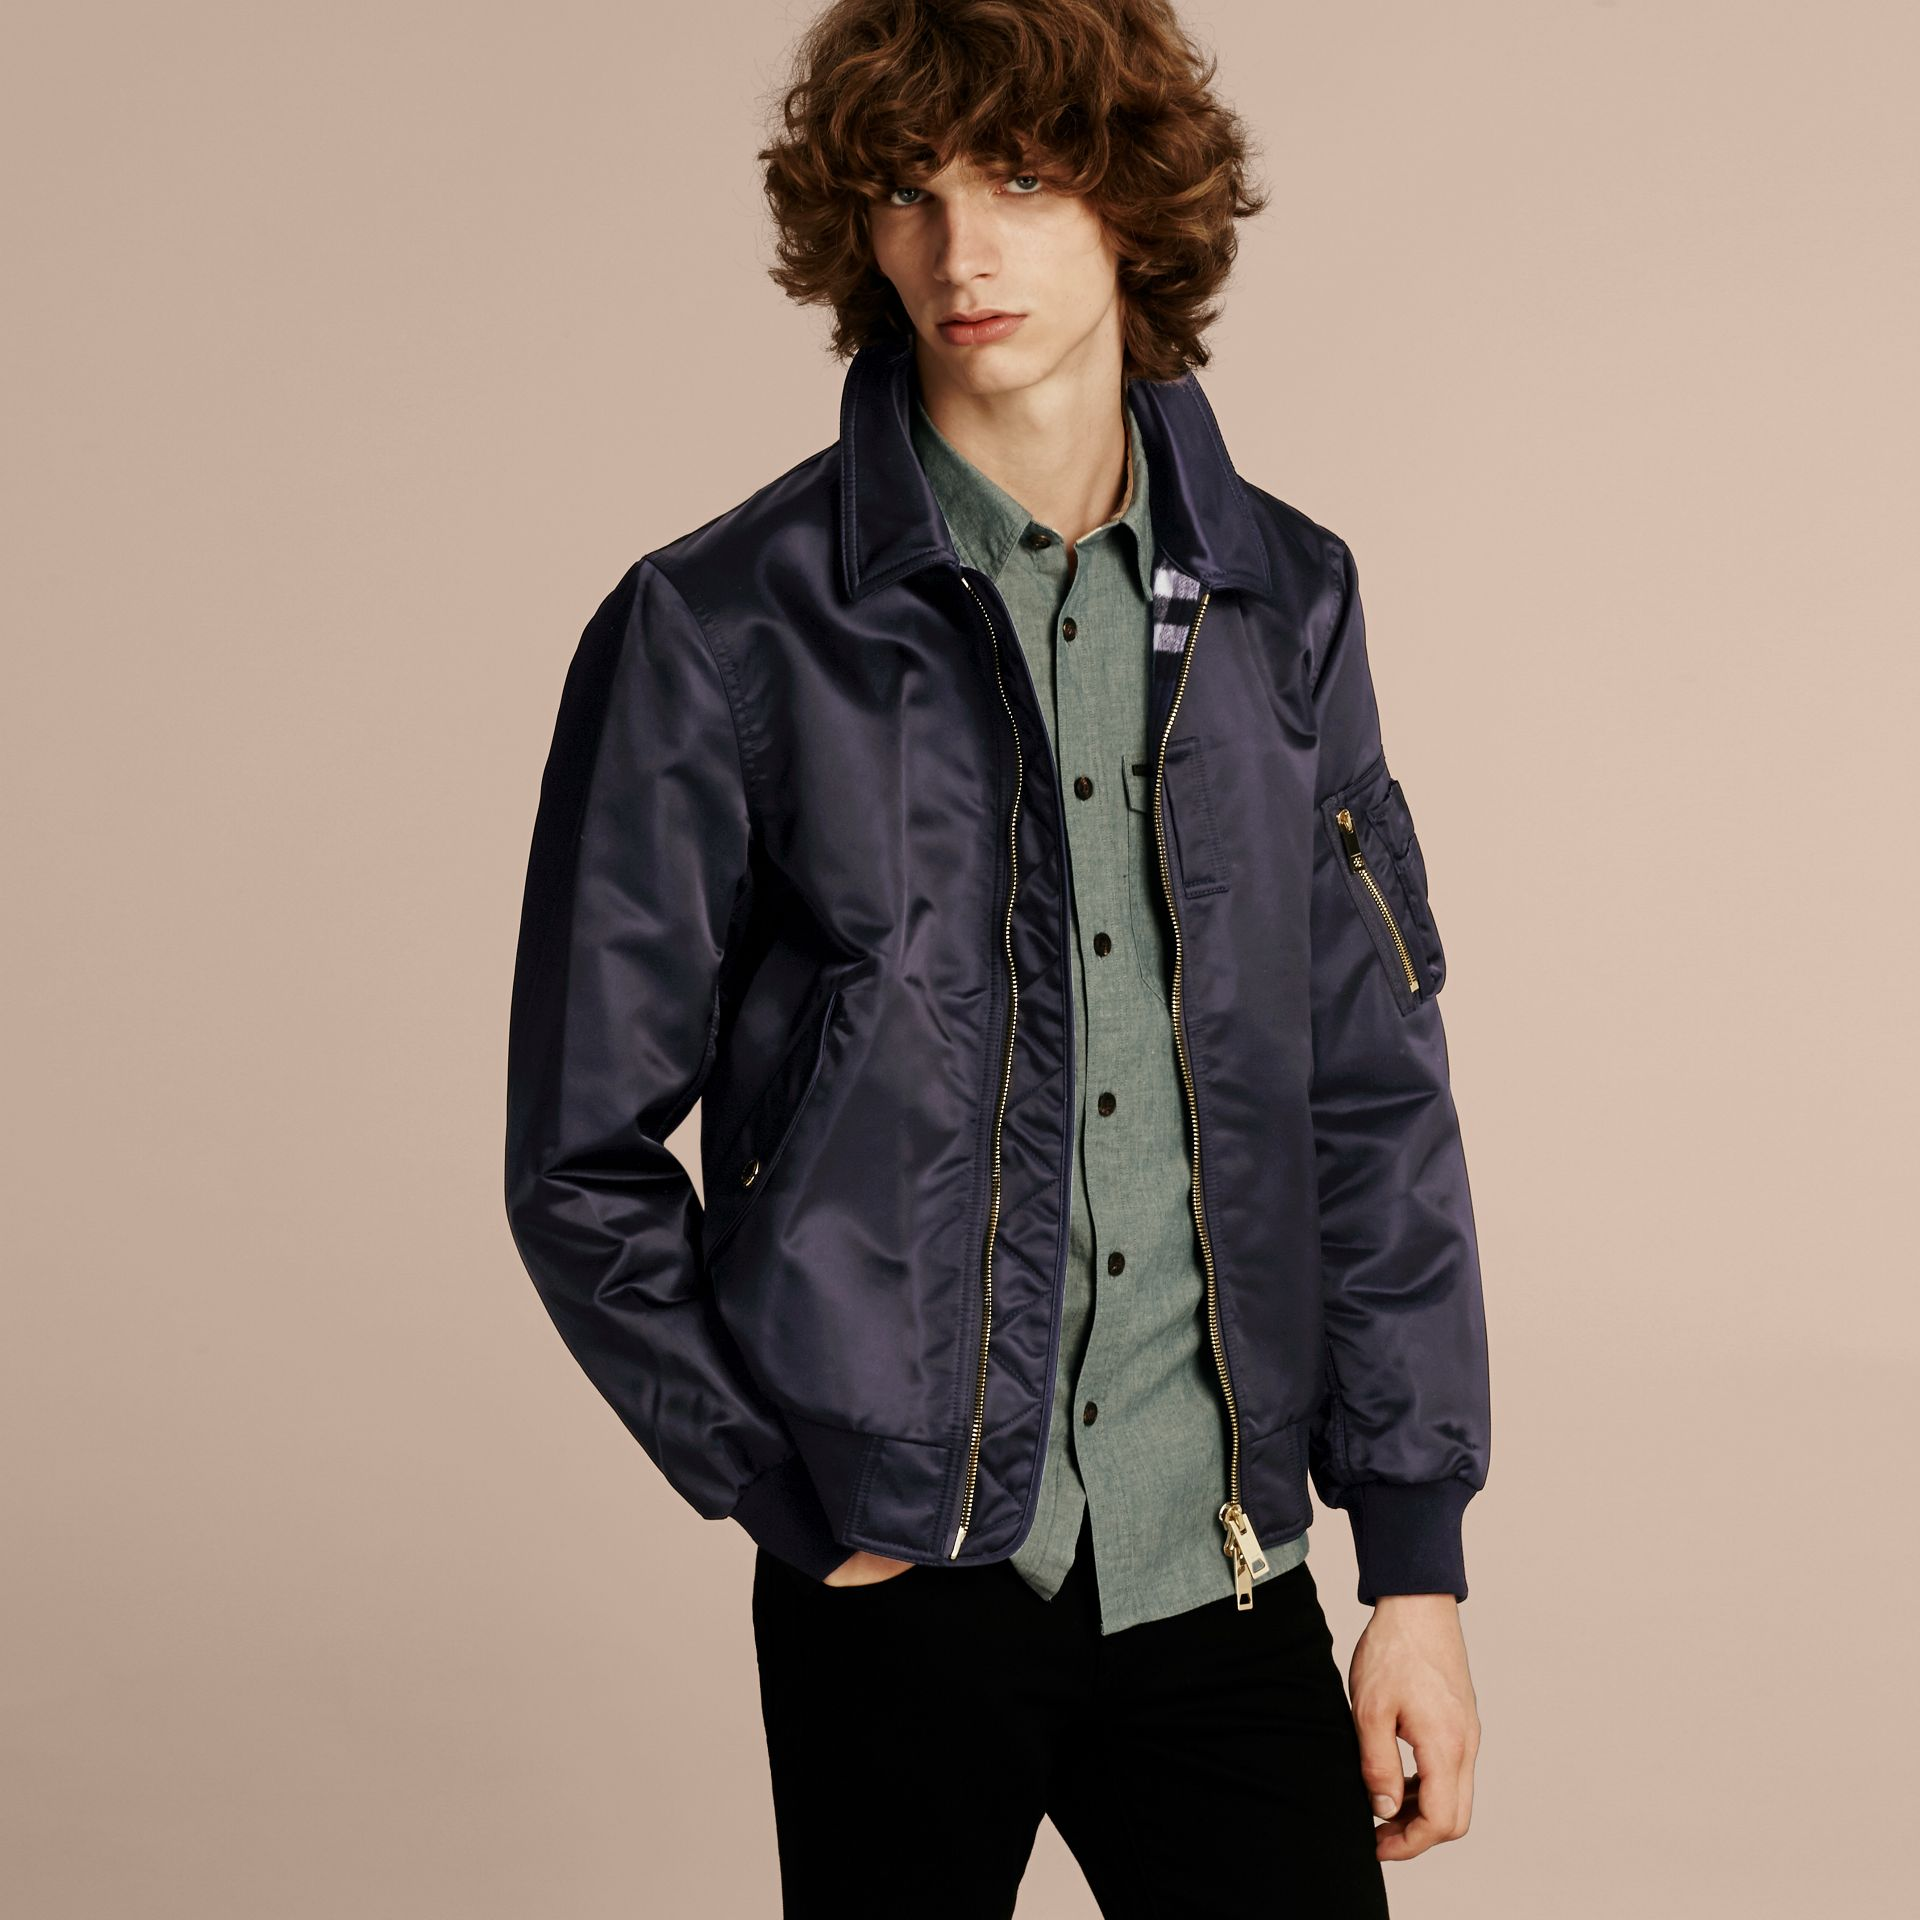 Navy Satin Bomber Jacket with Check Undercollar Navy - gallery image 7